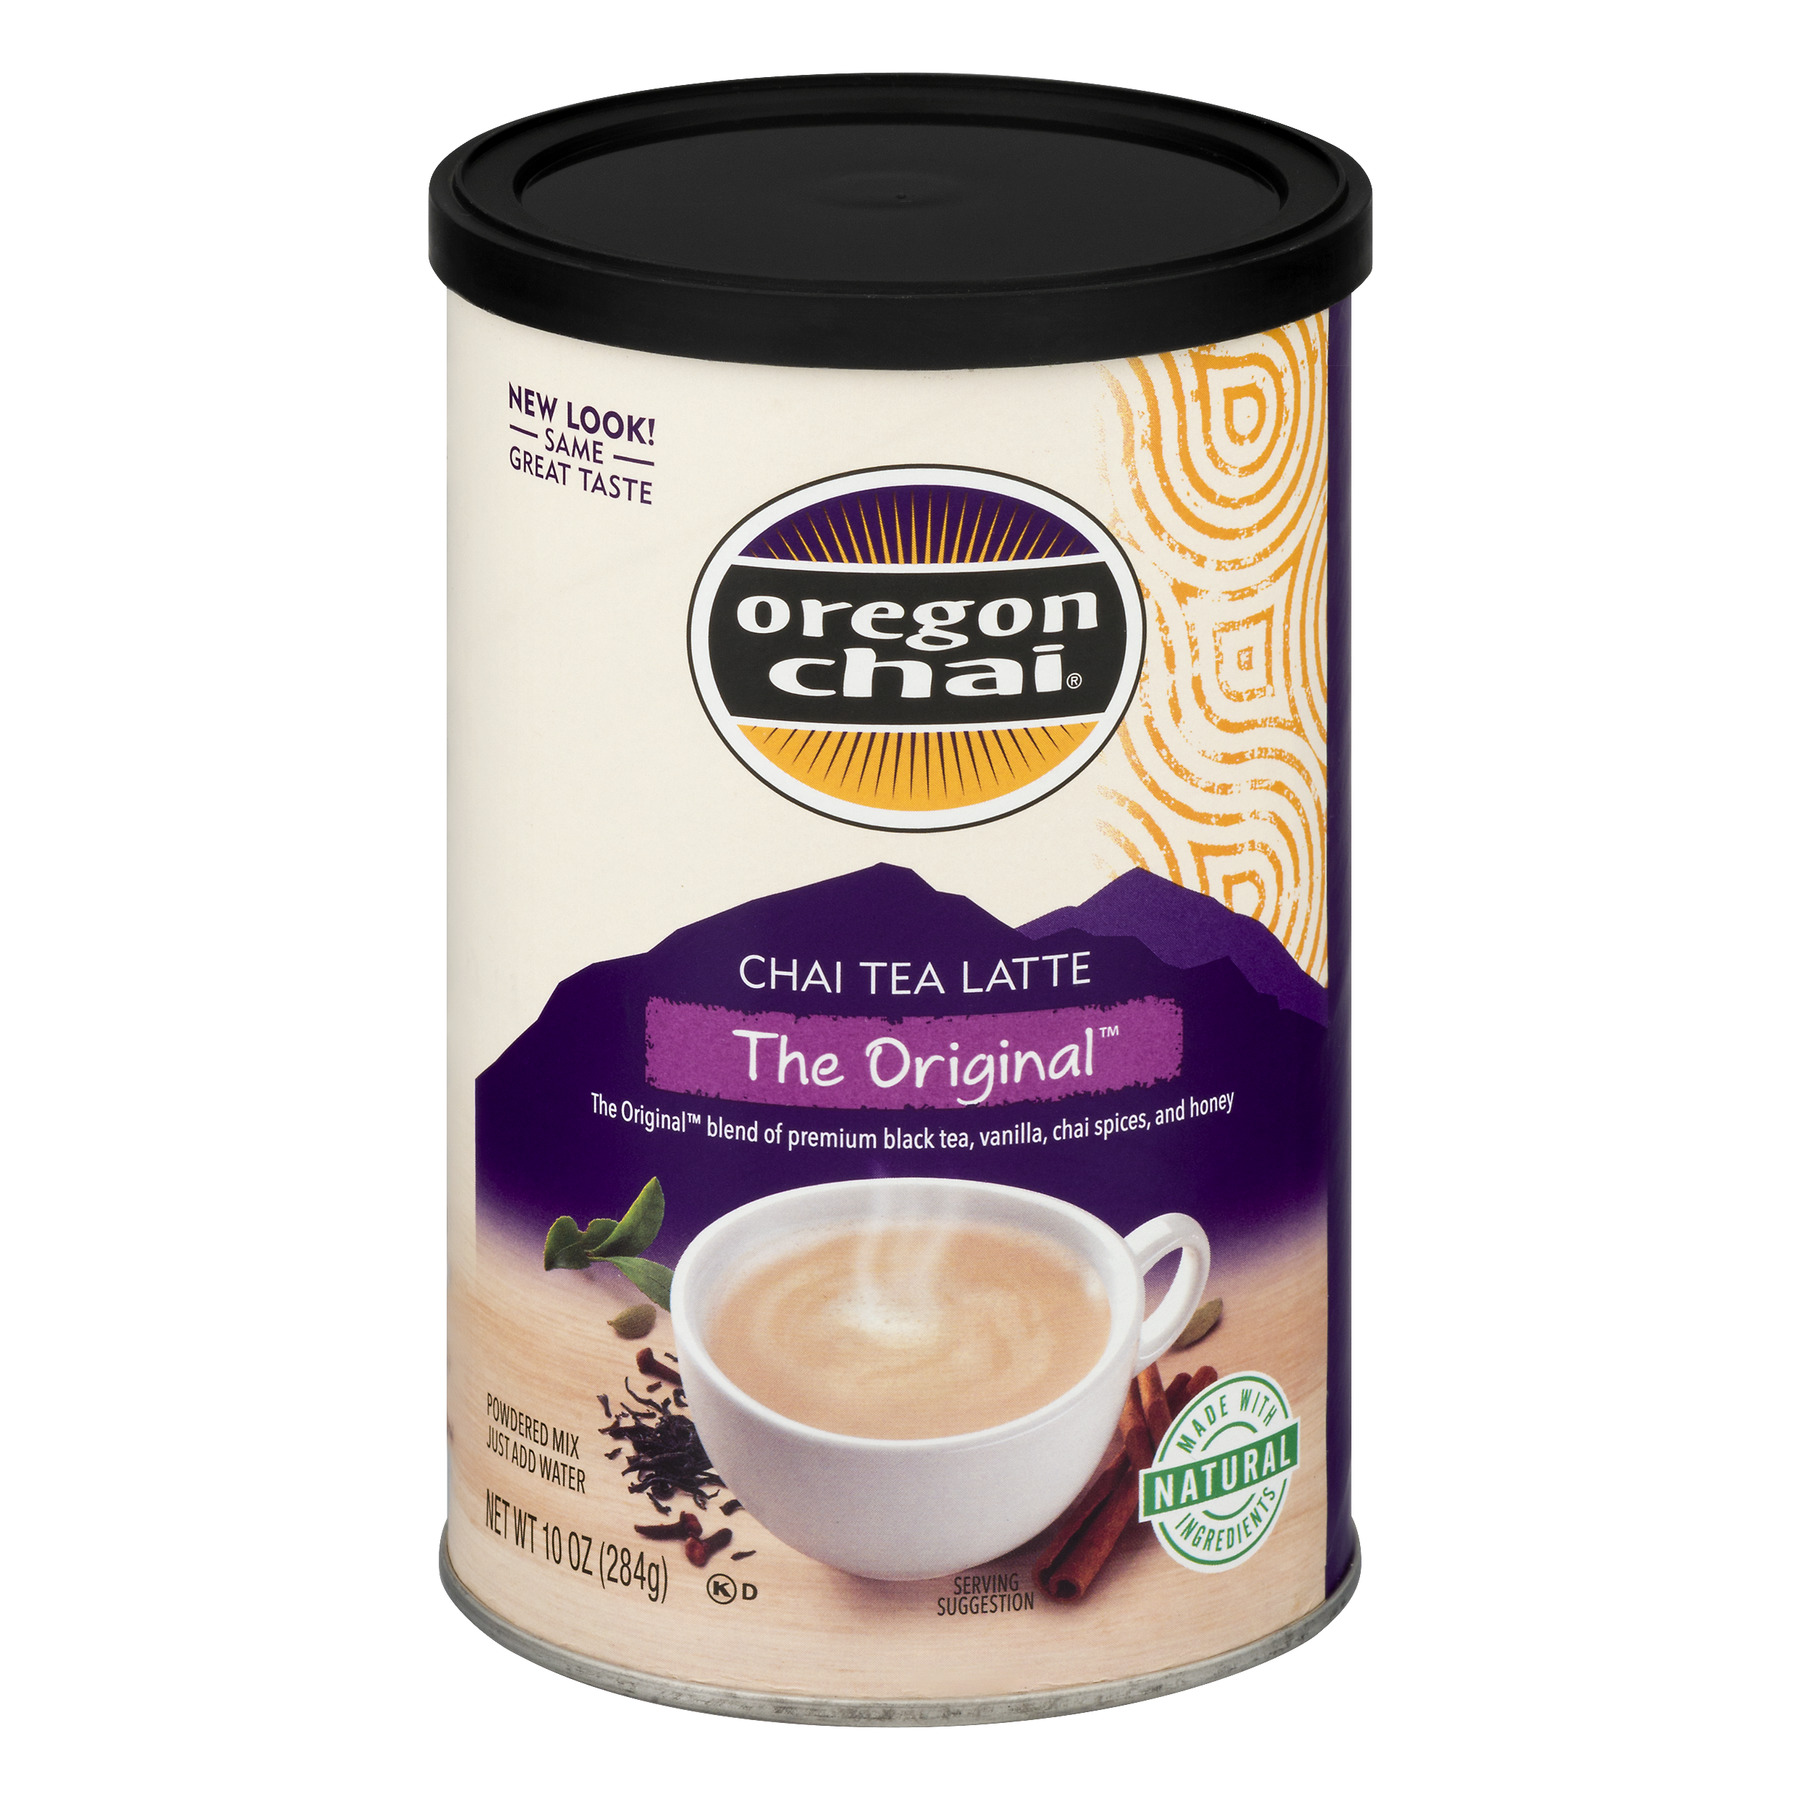 (24 Pack) Oregon Chai The Original Chai Tea Latte Powdered Mix, 10 oz